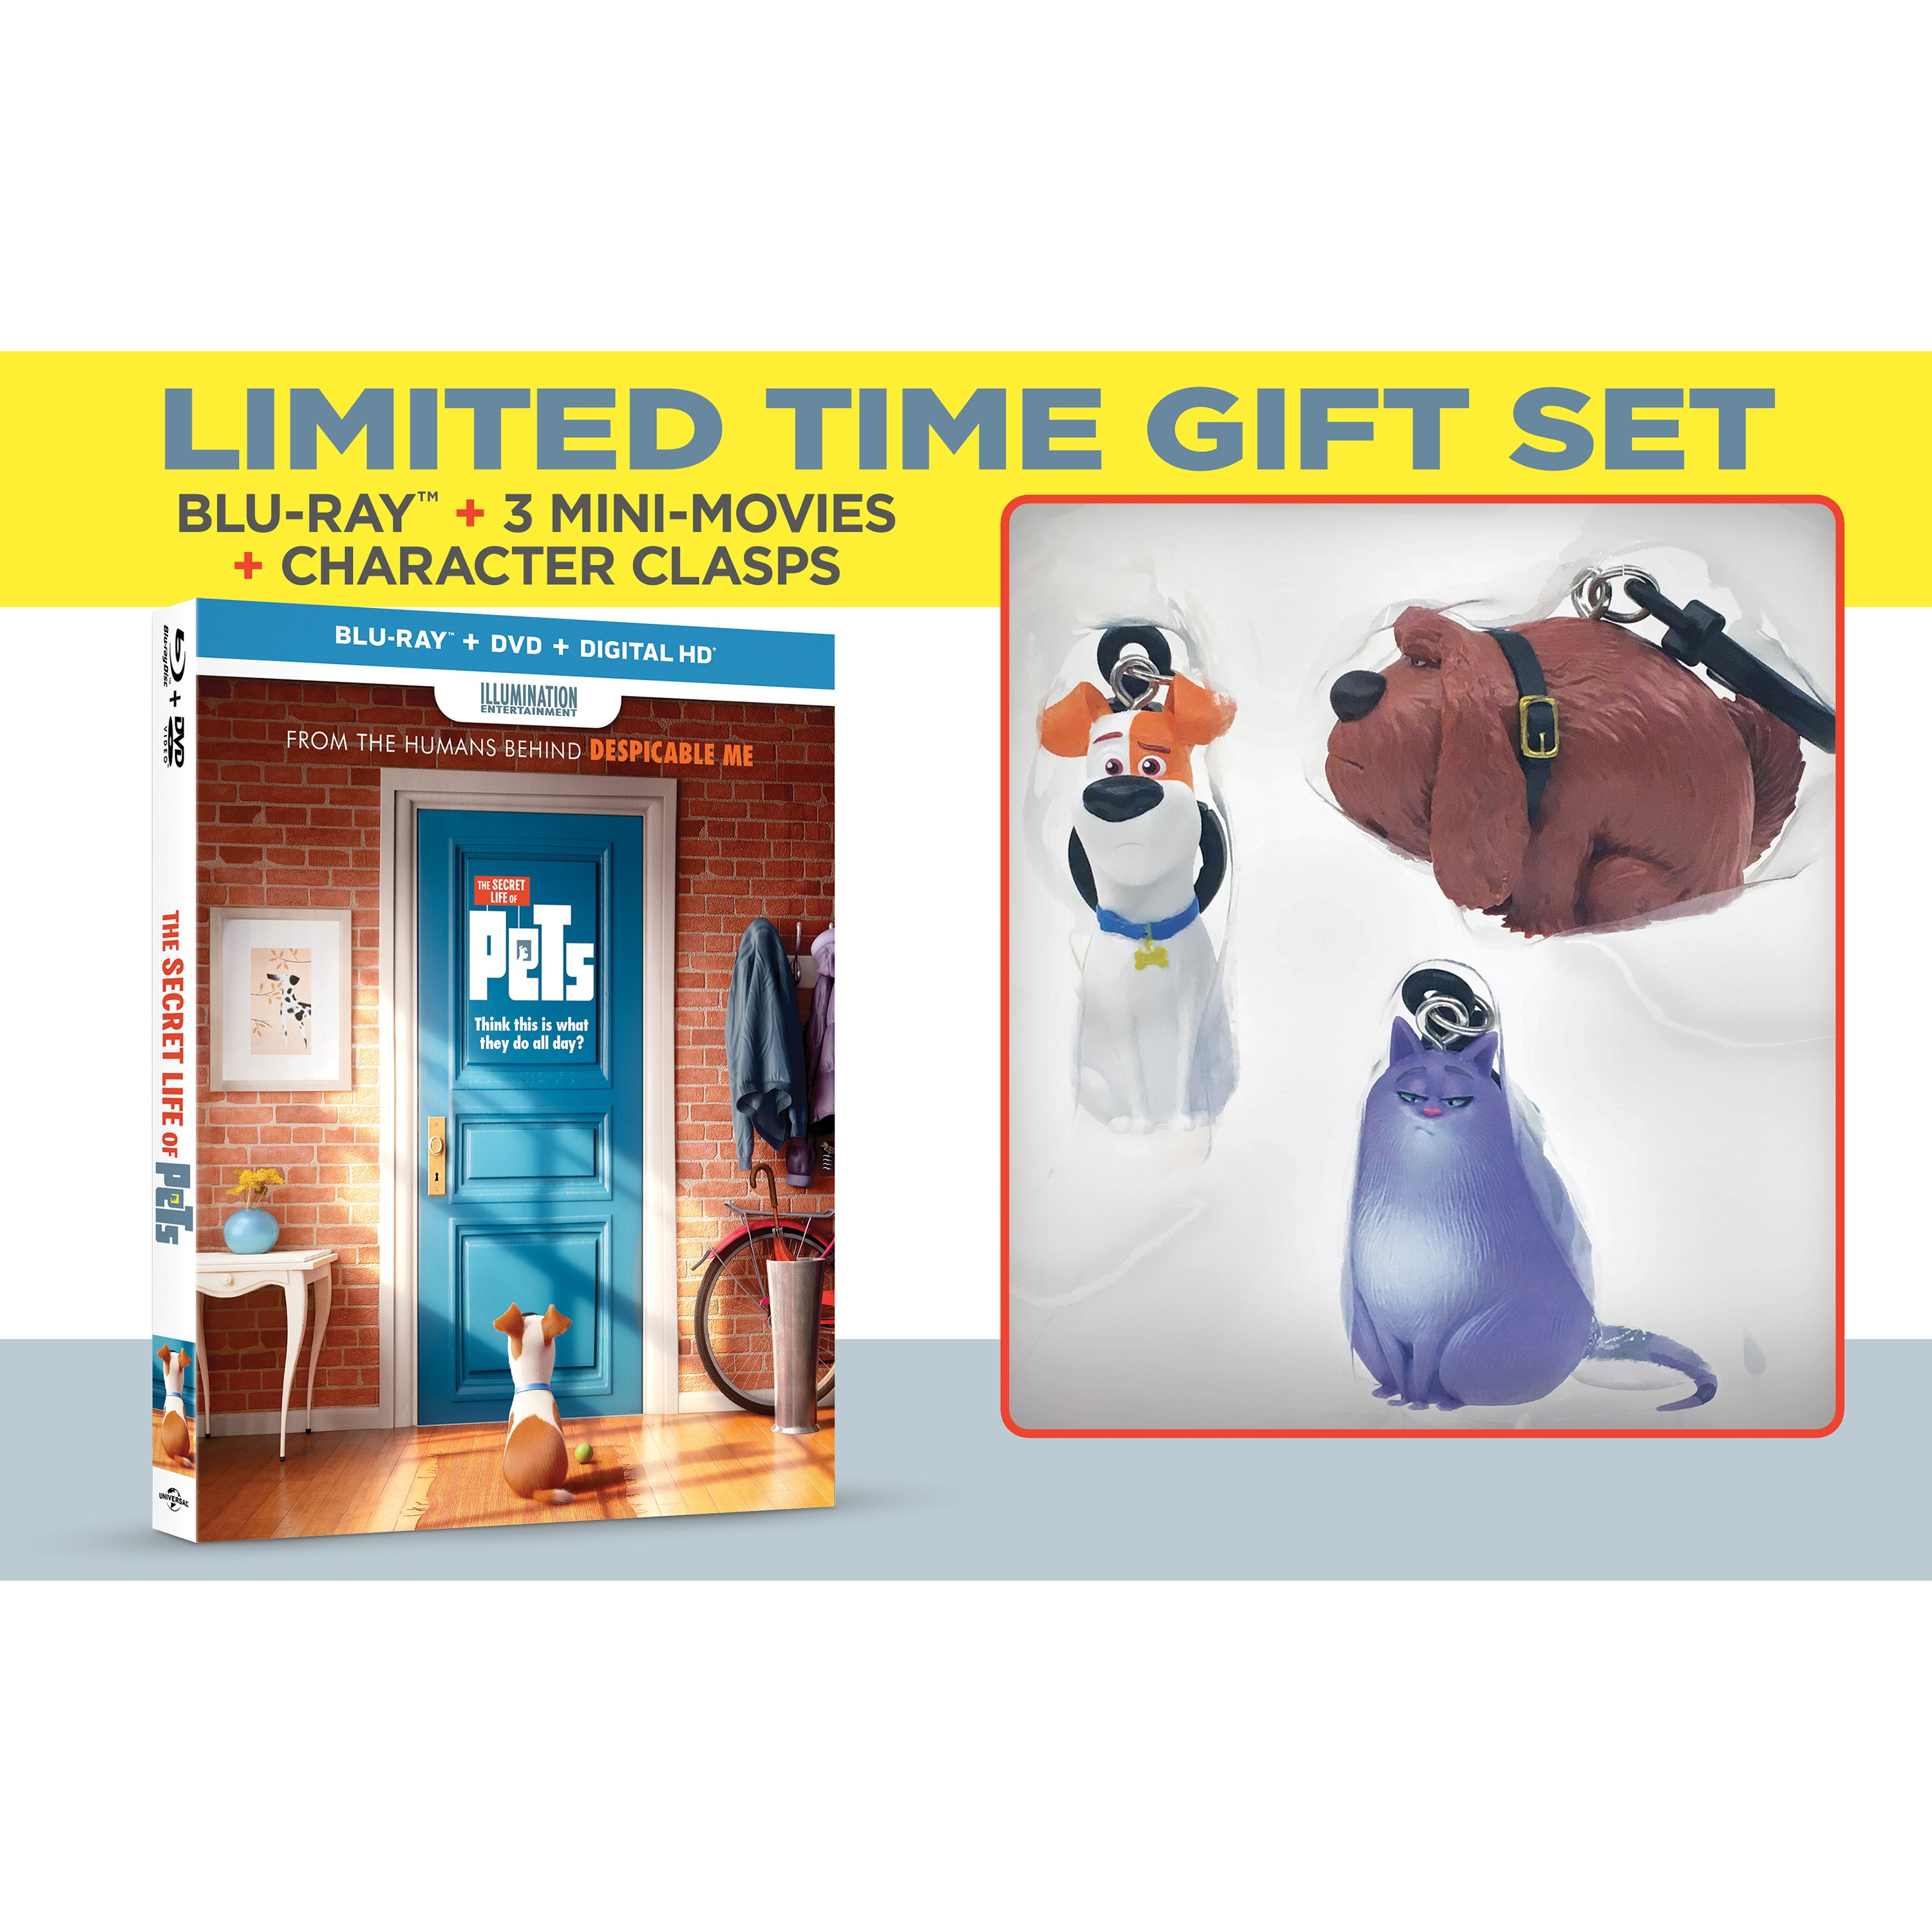 The Secret Life of Pets: Includes Walmart Exclusive Secret Life of Pets toy characters.